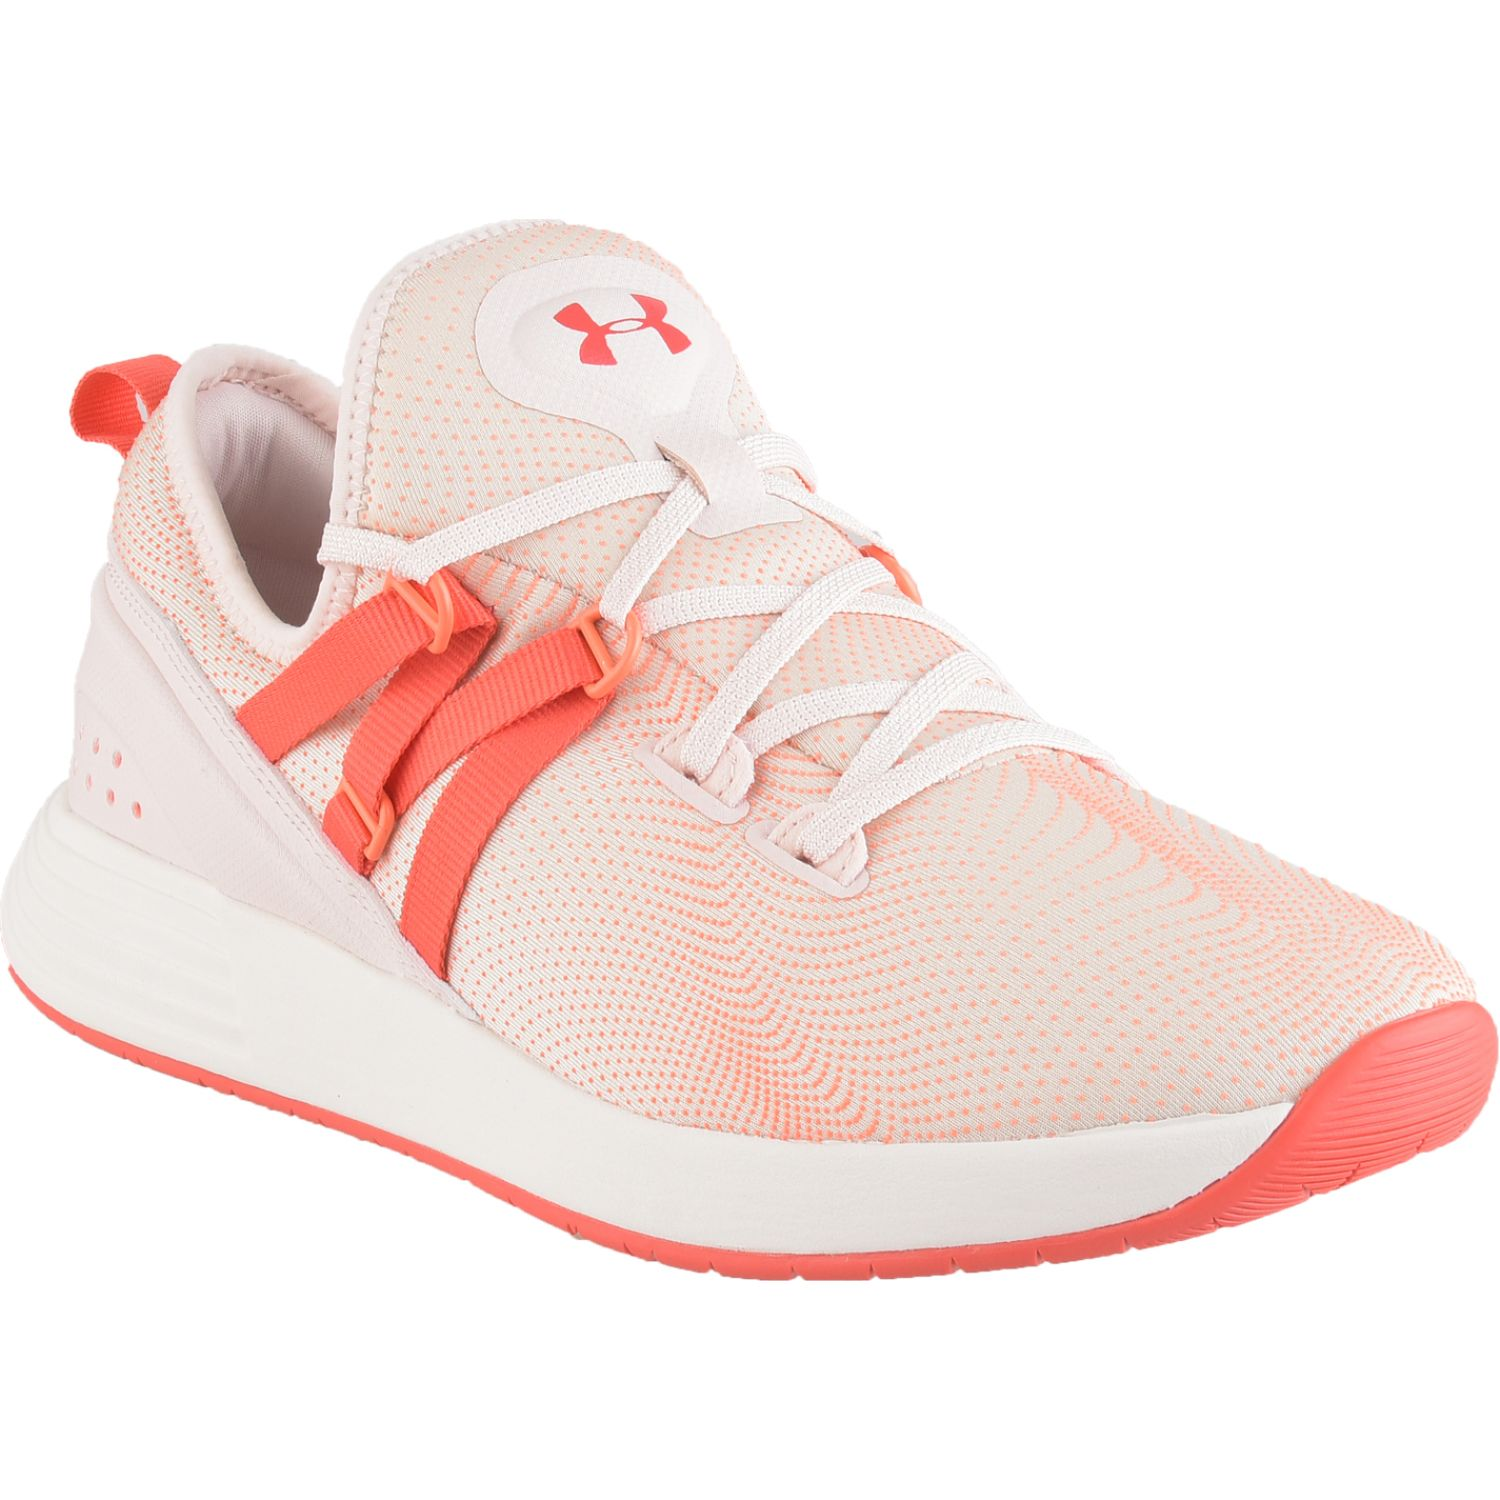 Under Armour ua w breathe trainer prnt Coral Mujeres